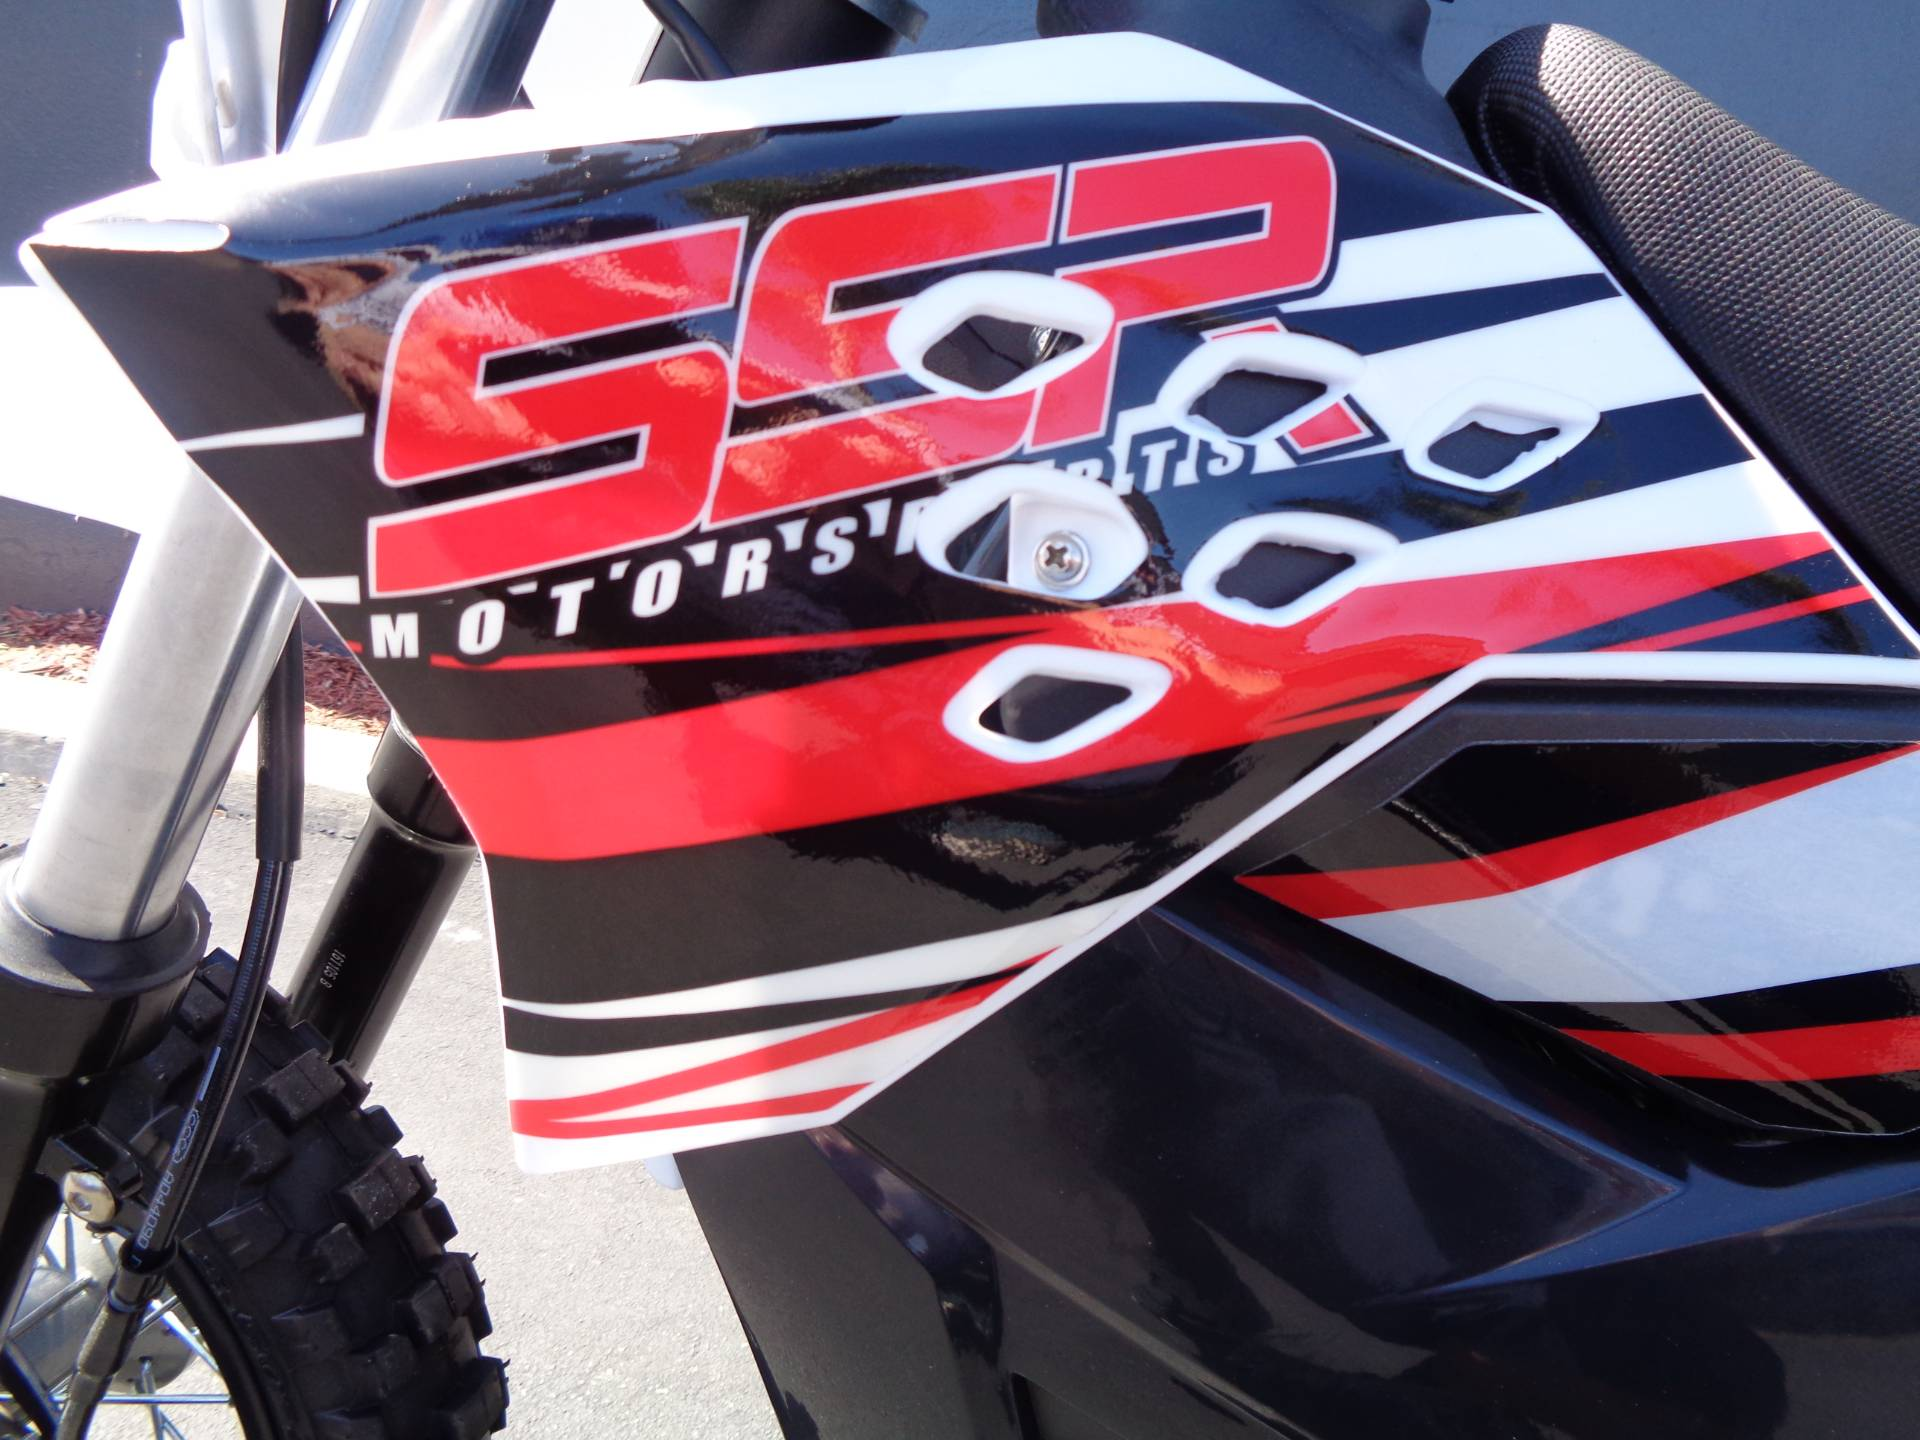 2018 SSR Motorsports SRZ800 in Chula Vista, California - Photo 17